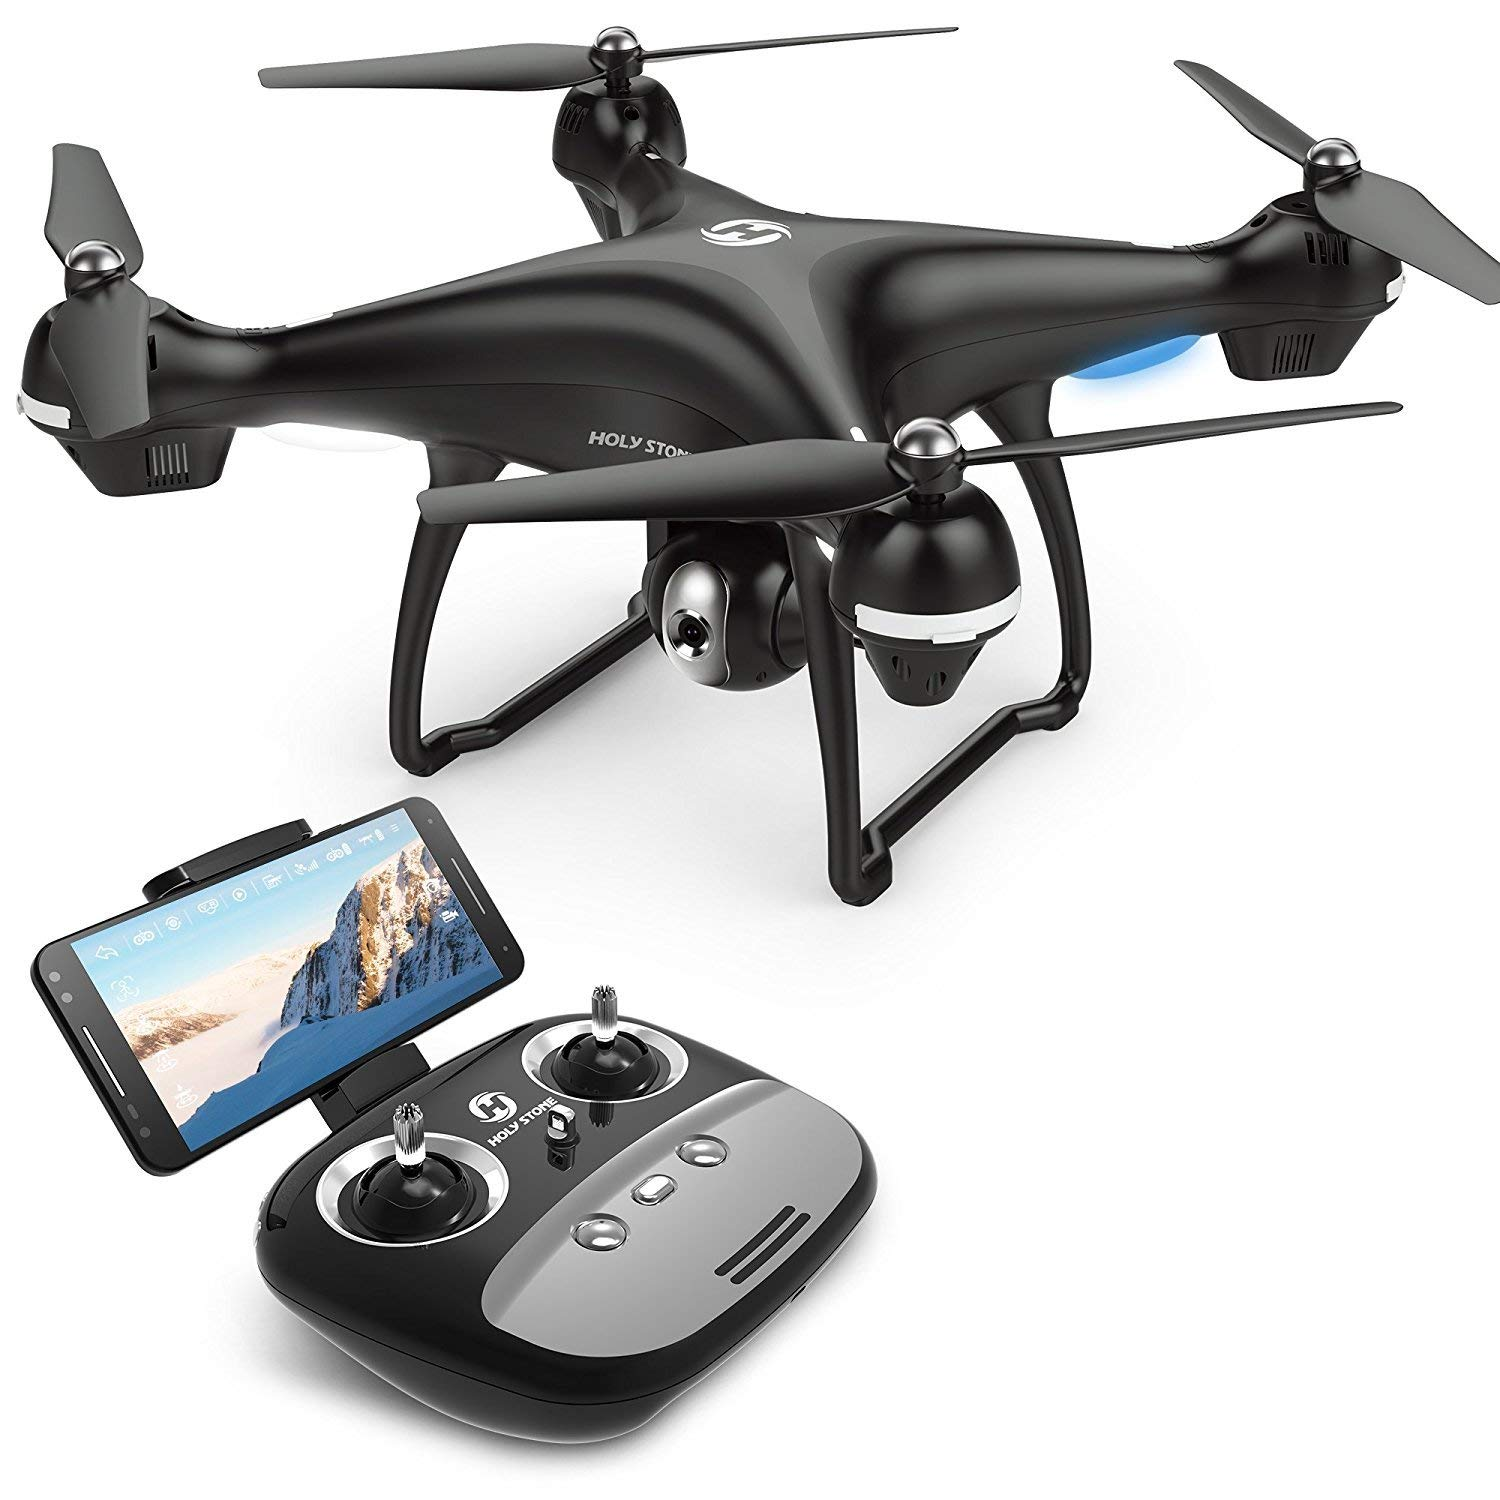 15% OFF Holy Stone GPS FPV RC Drone HS100 with Camera Live Video 1080P HD and GPS